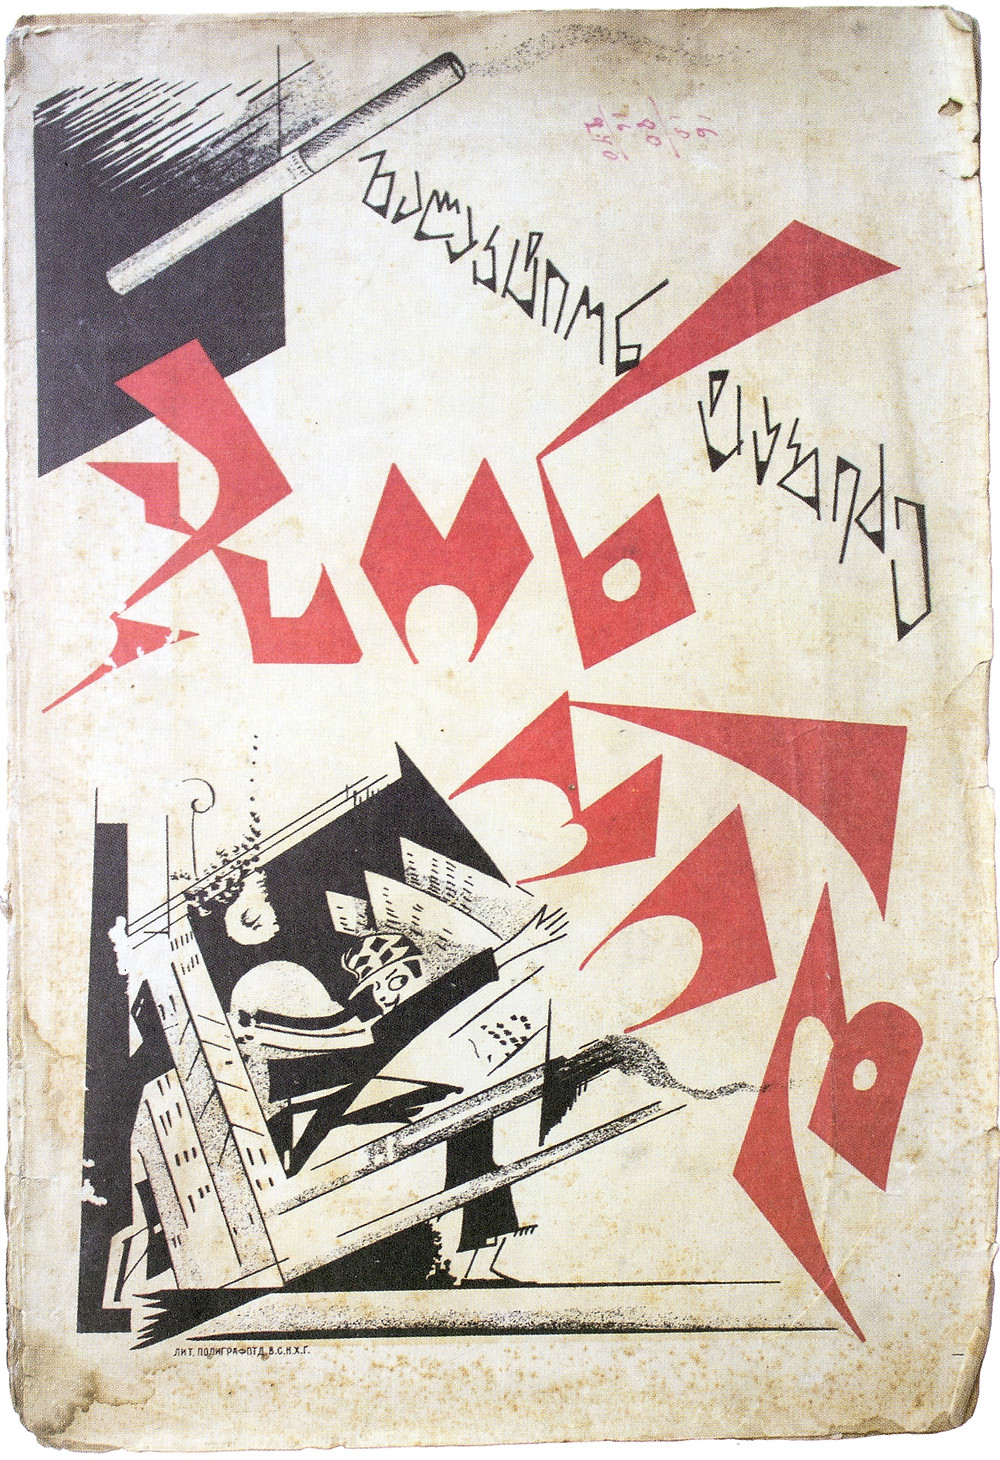 Cover and illustrations by Irakli Gamrekeli, 1924.